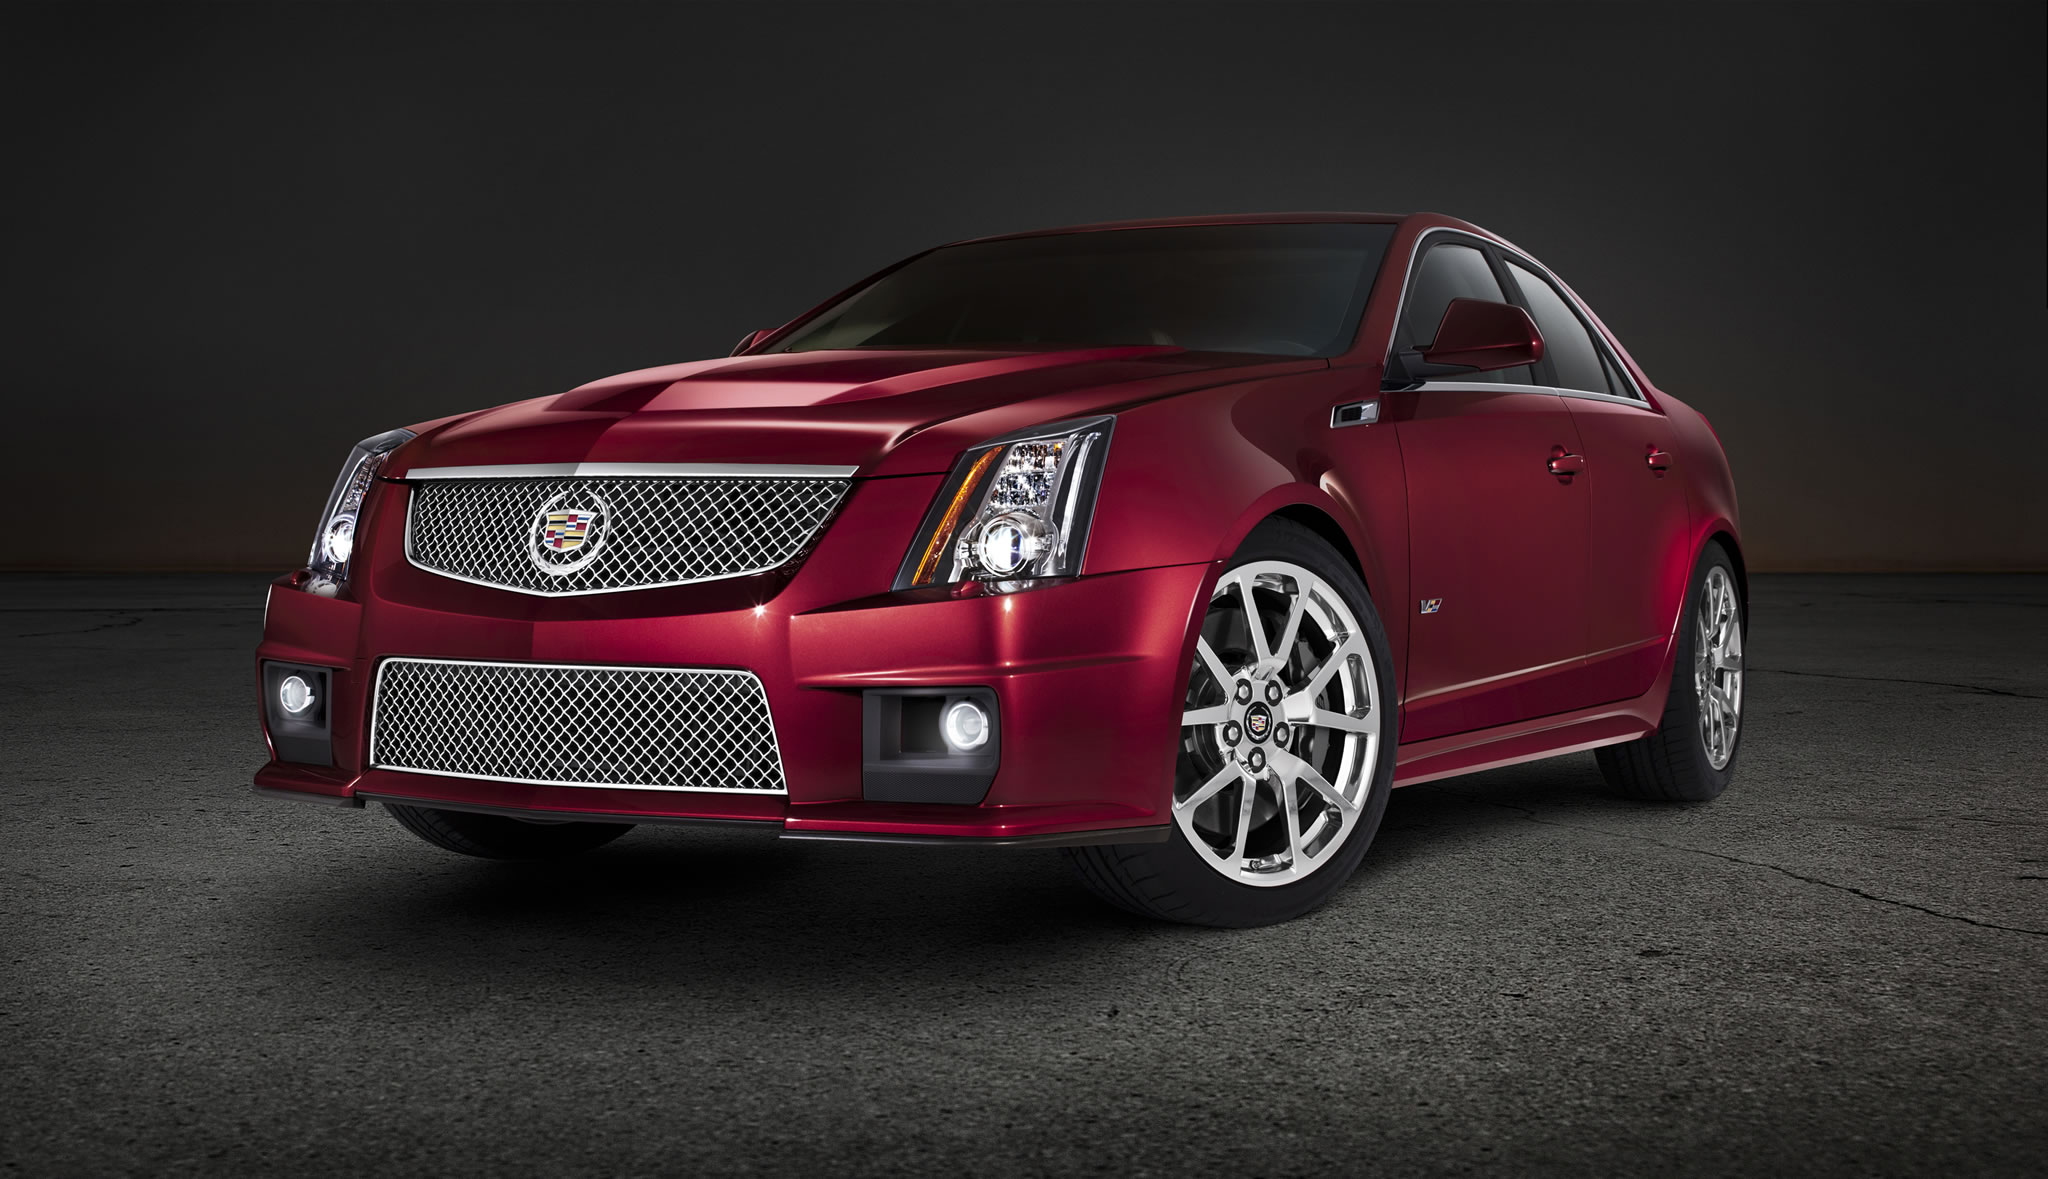 2014 cadillac cts v sedan front photo red obsession. Black Bedroom Furniture Sets. Home Design Ideas